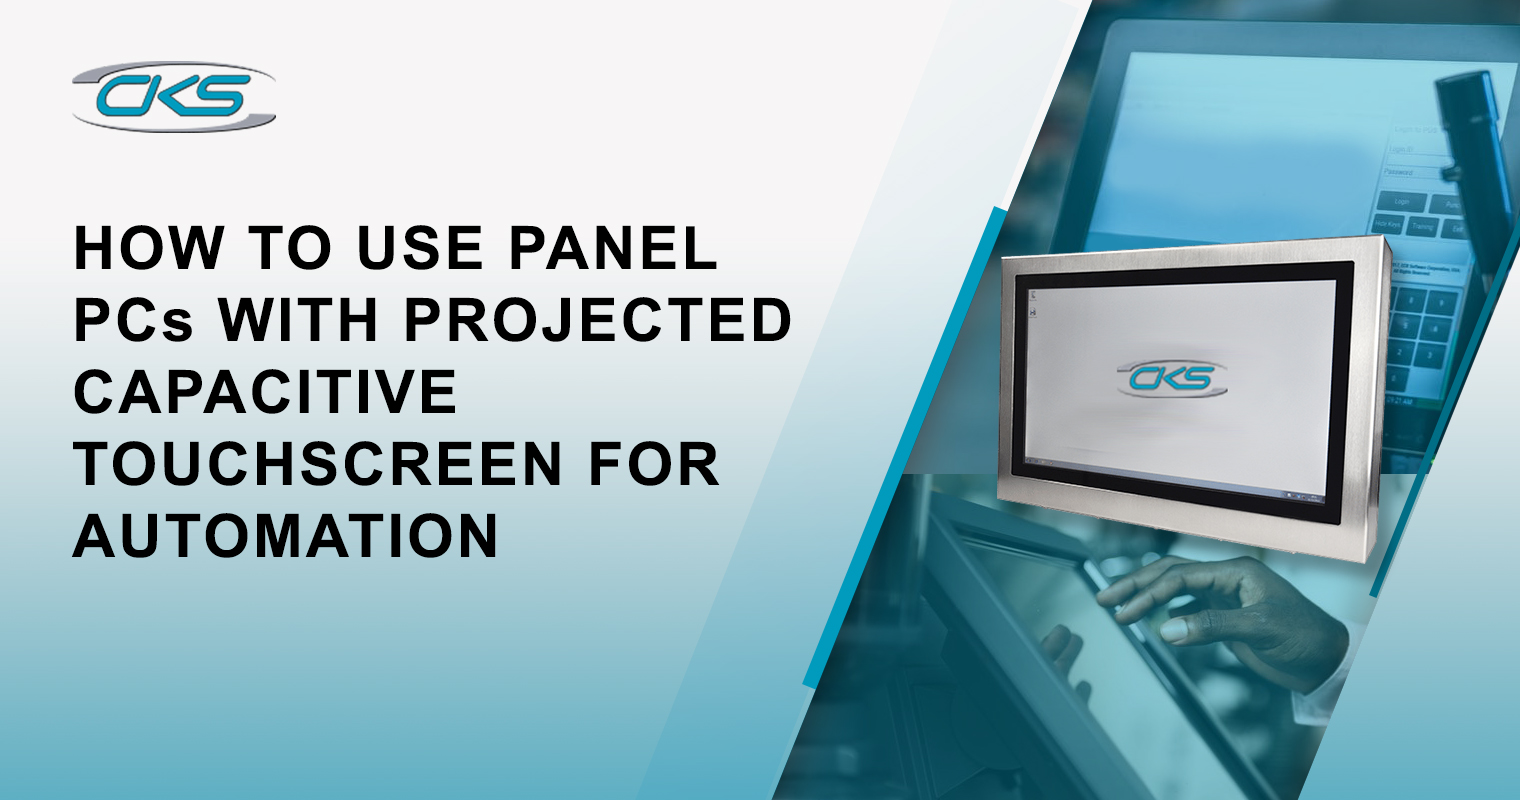 How To Use Panel PCs With Projected Capacitive Touchscreen